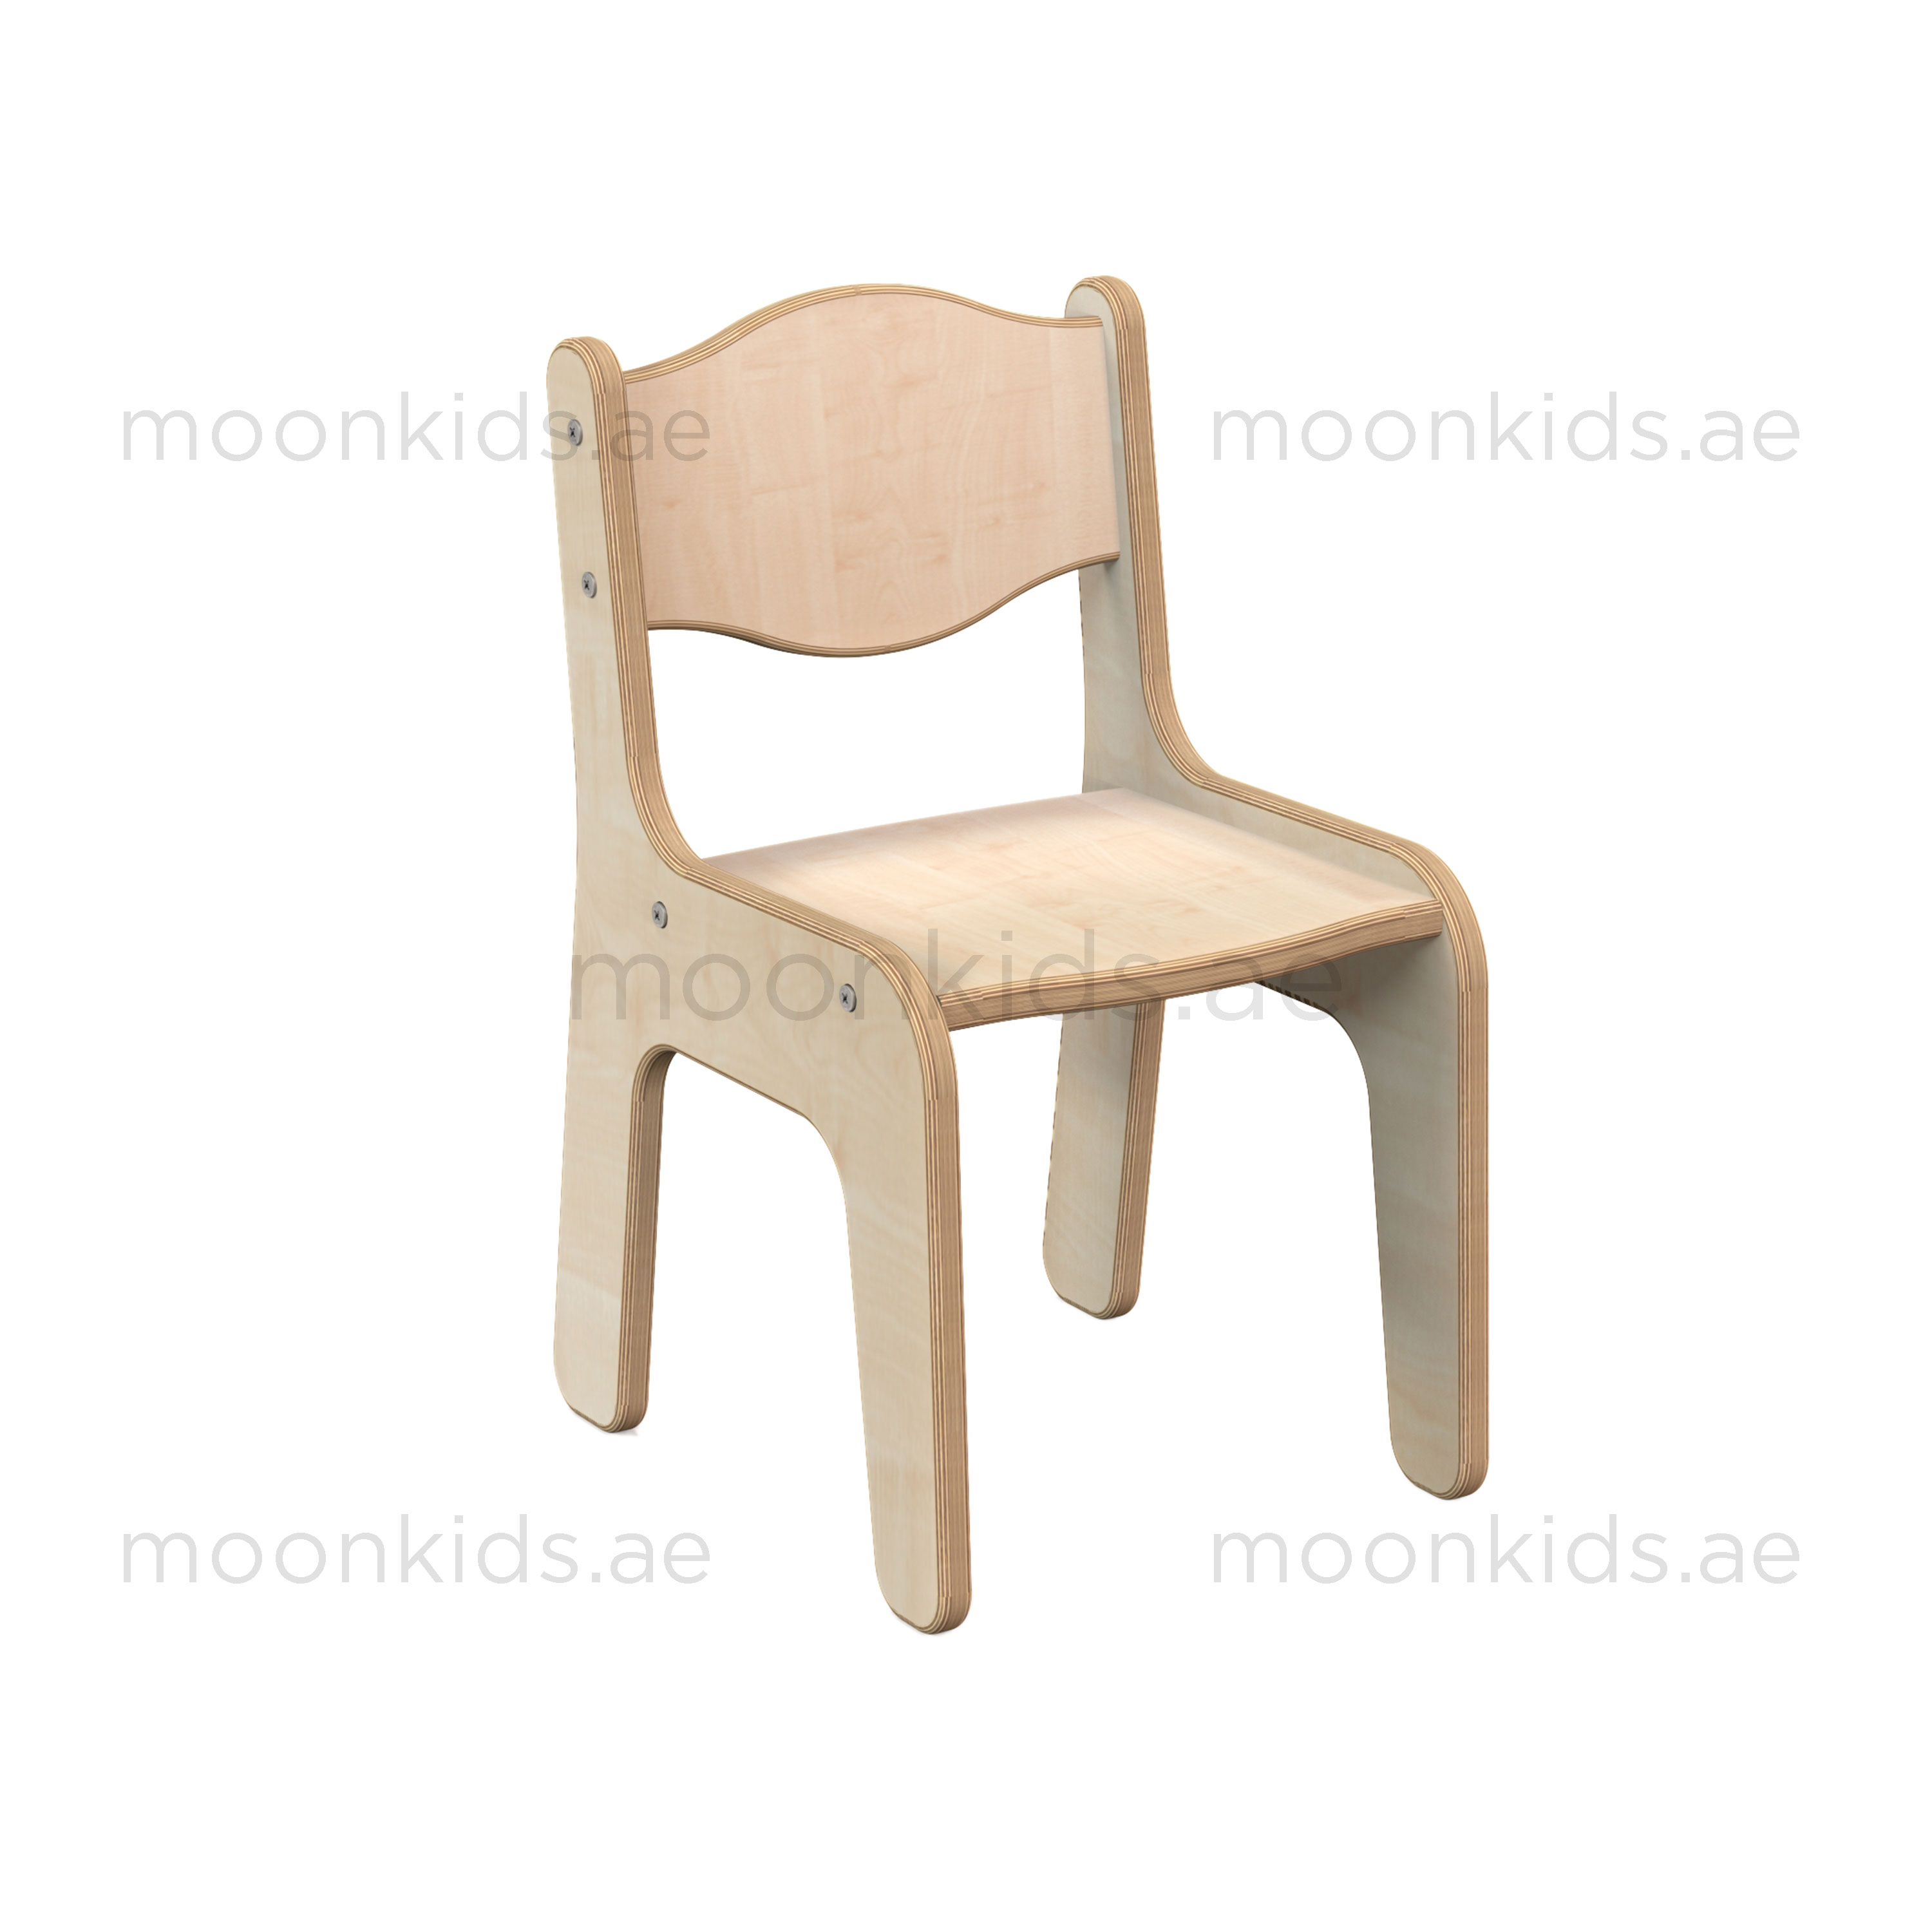 MOON KIDS-TODDLER-CHAIR